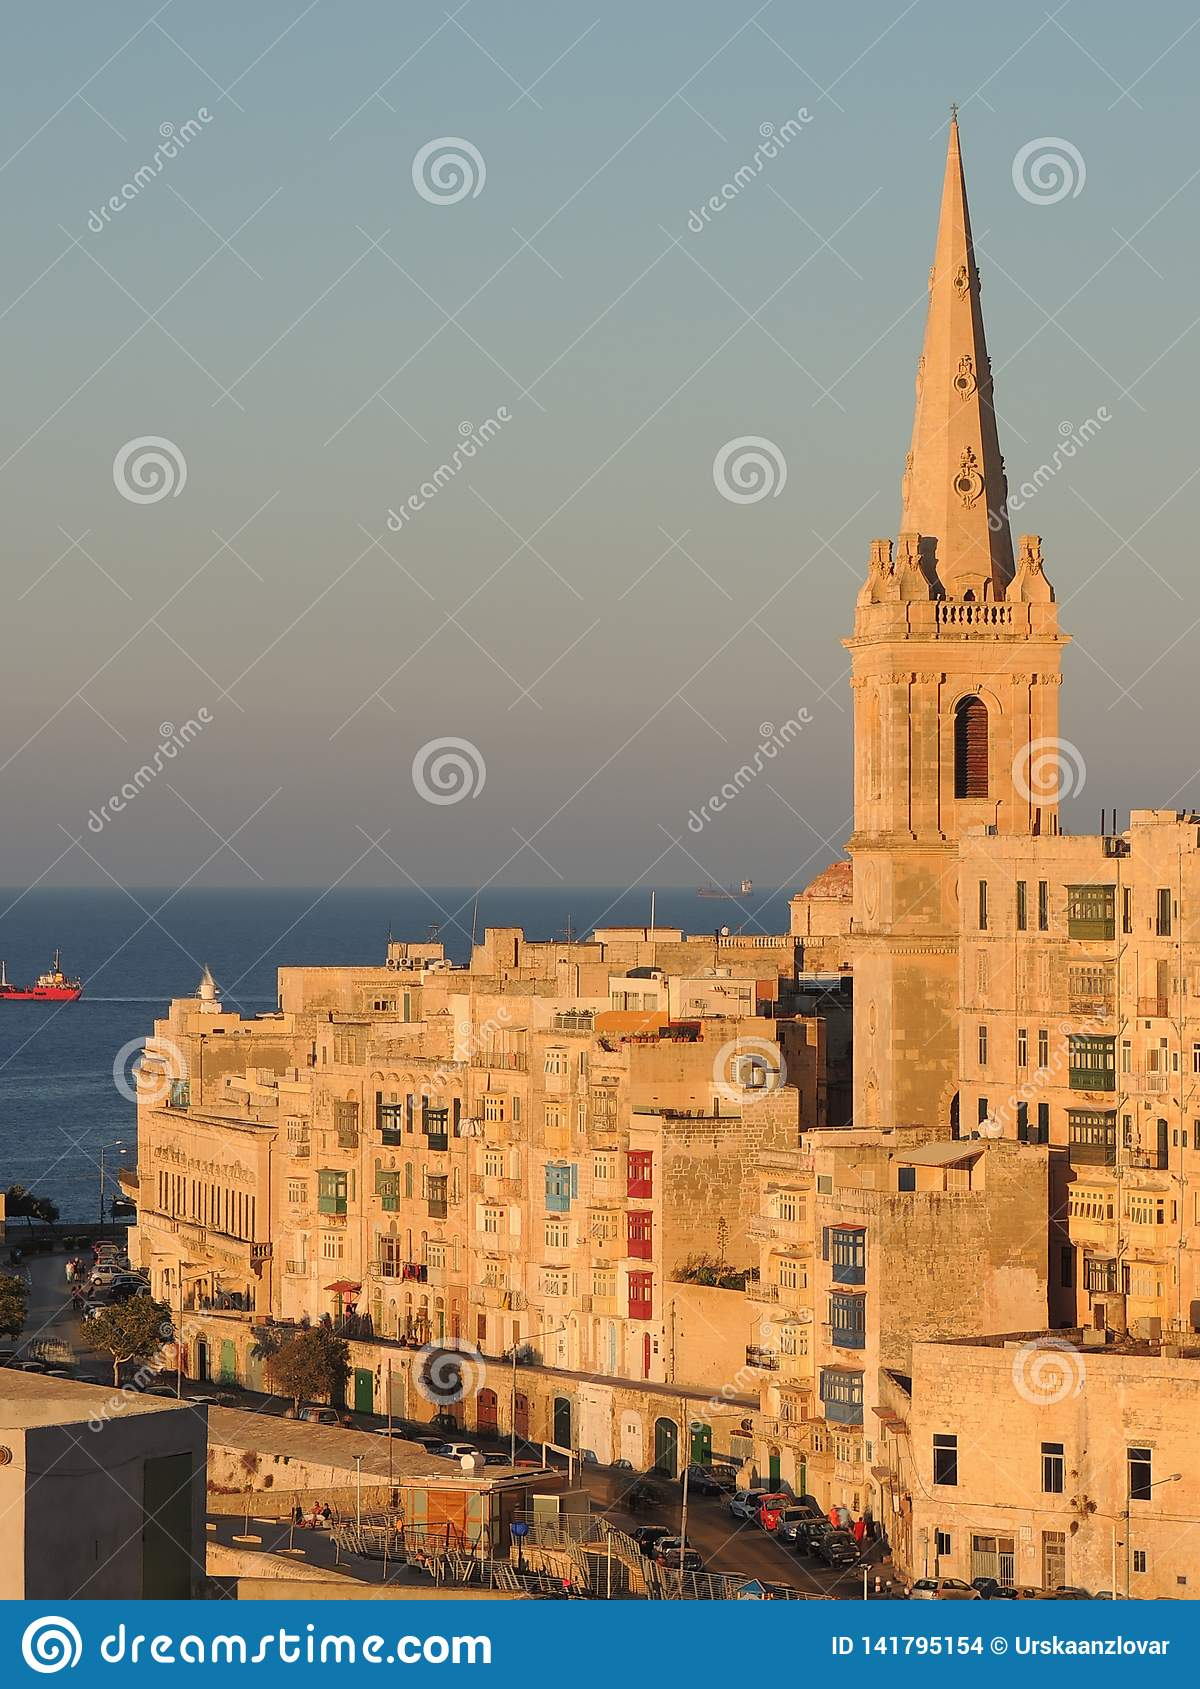 The capital of the malta